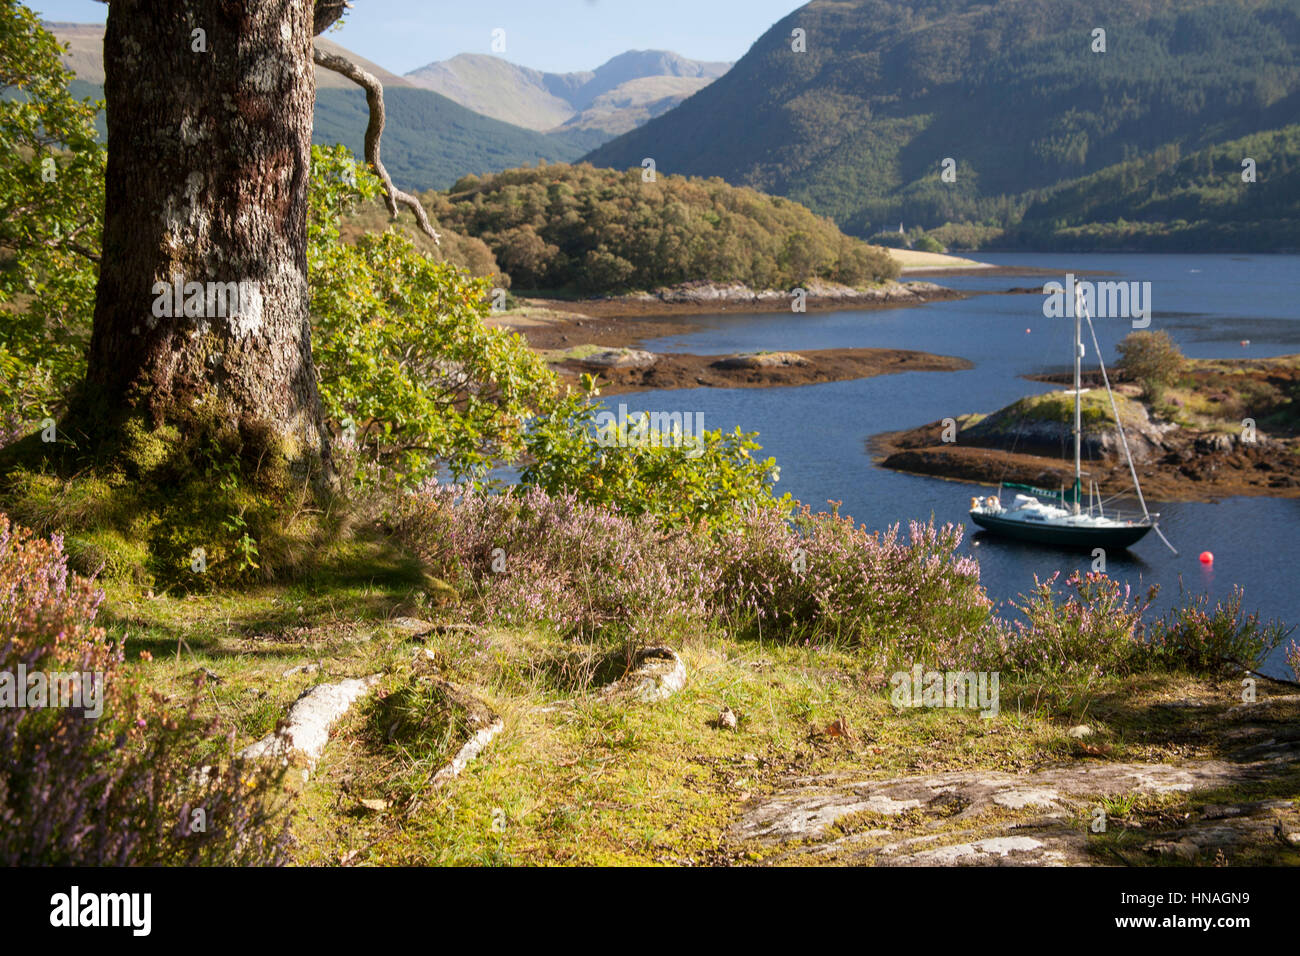 Yachts at anchor in Bishops bay on Loch Leven, Ballachulish, West Highlands - Stock Image